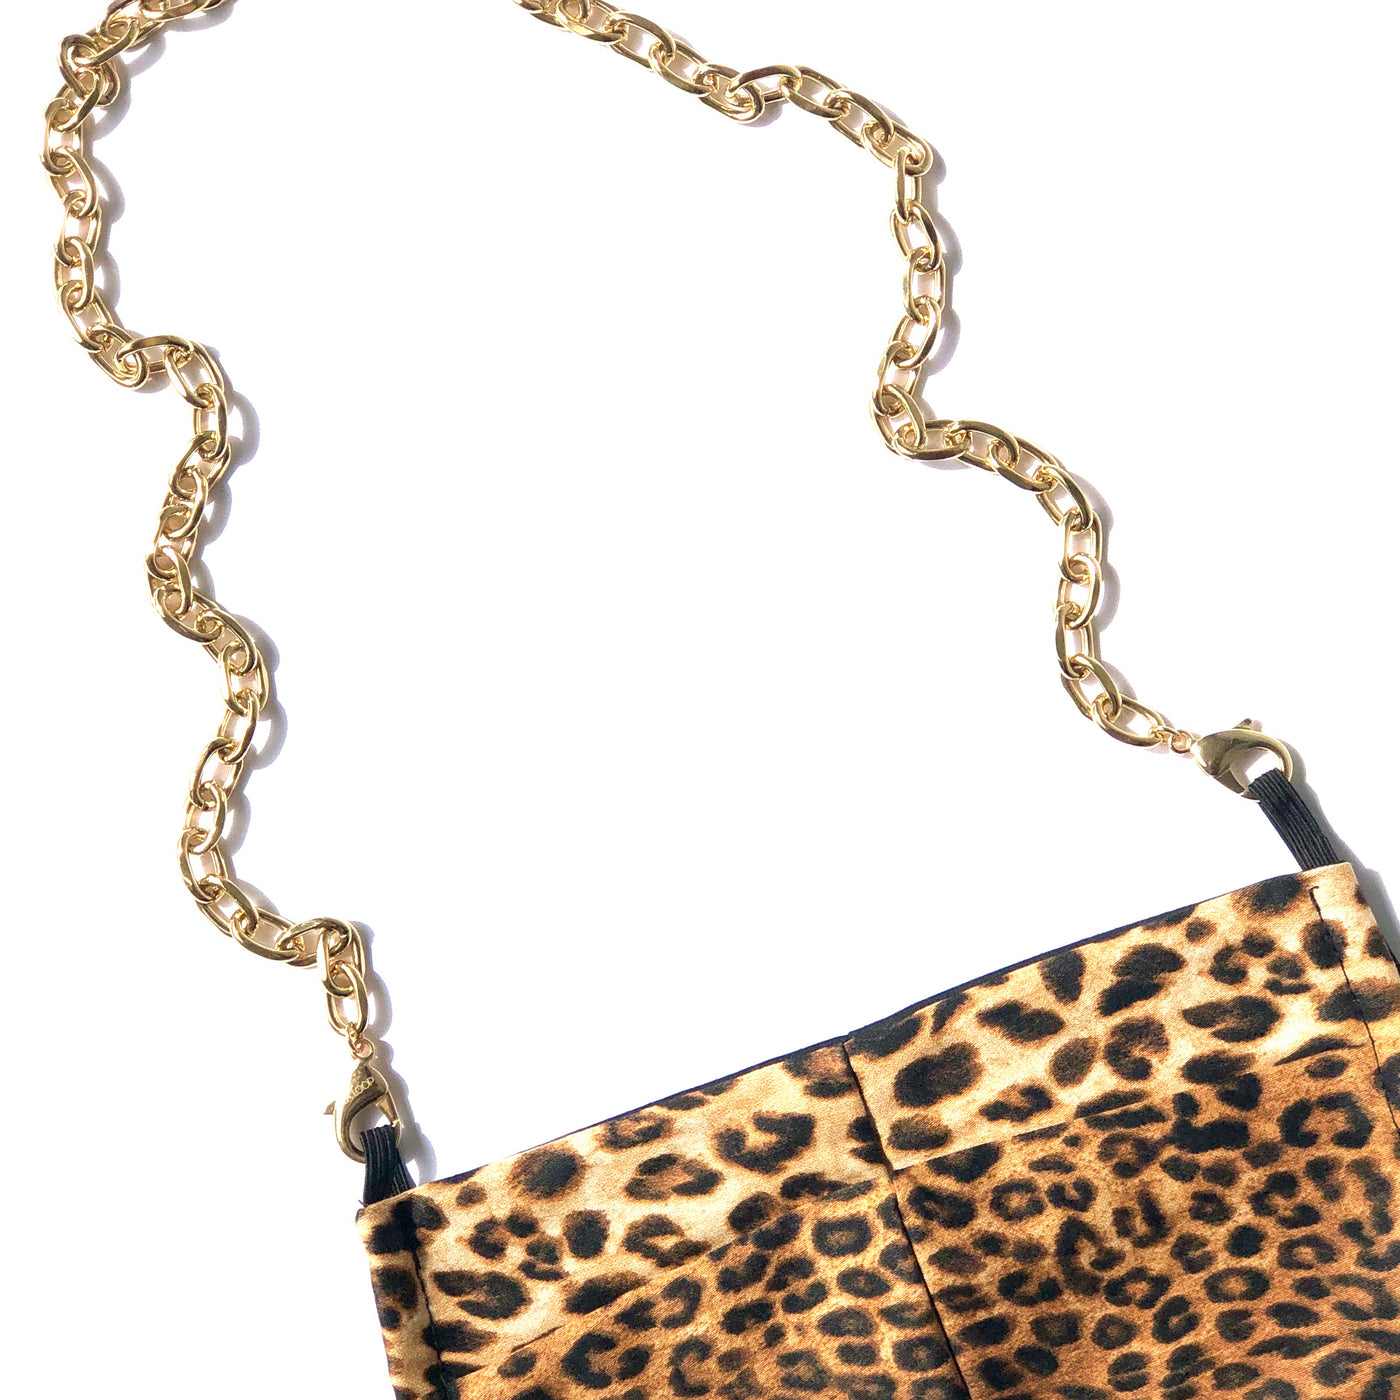 Vintage Gold Plated Chain with Leopard Cotton Mask